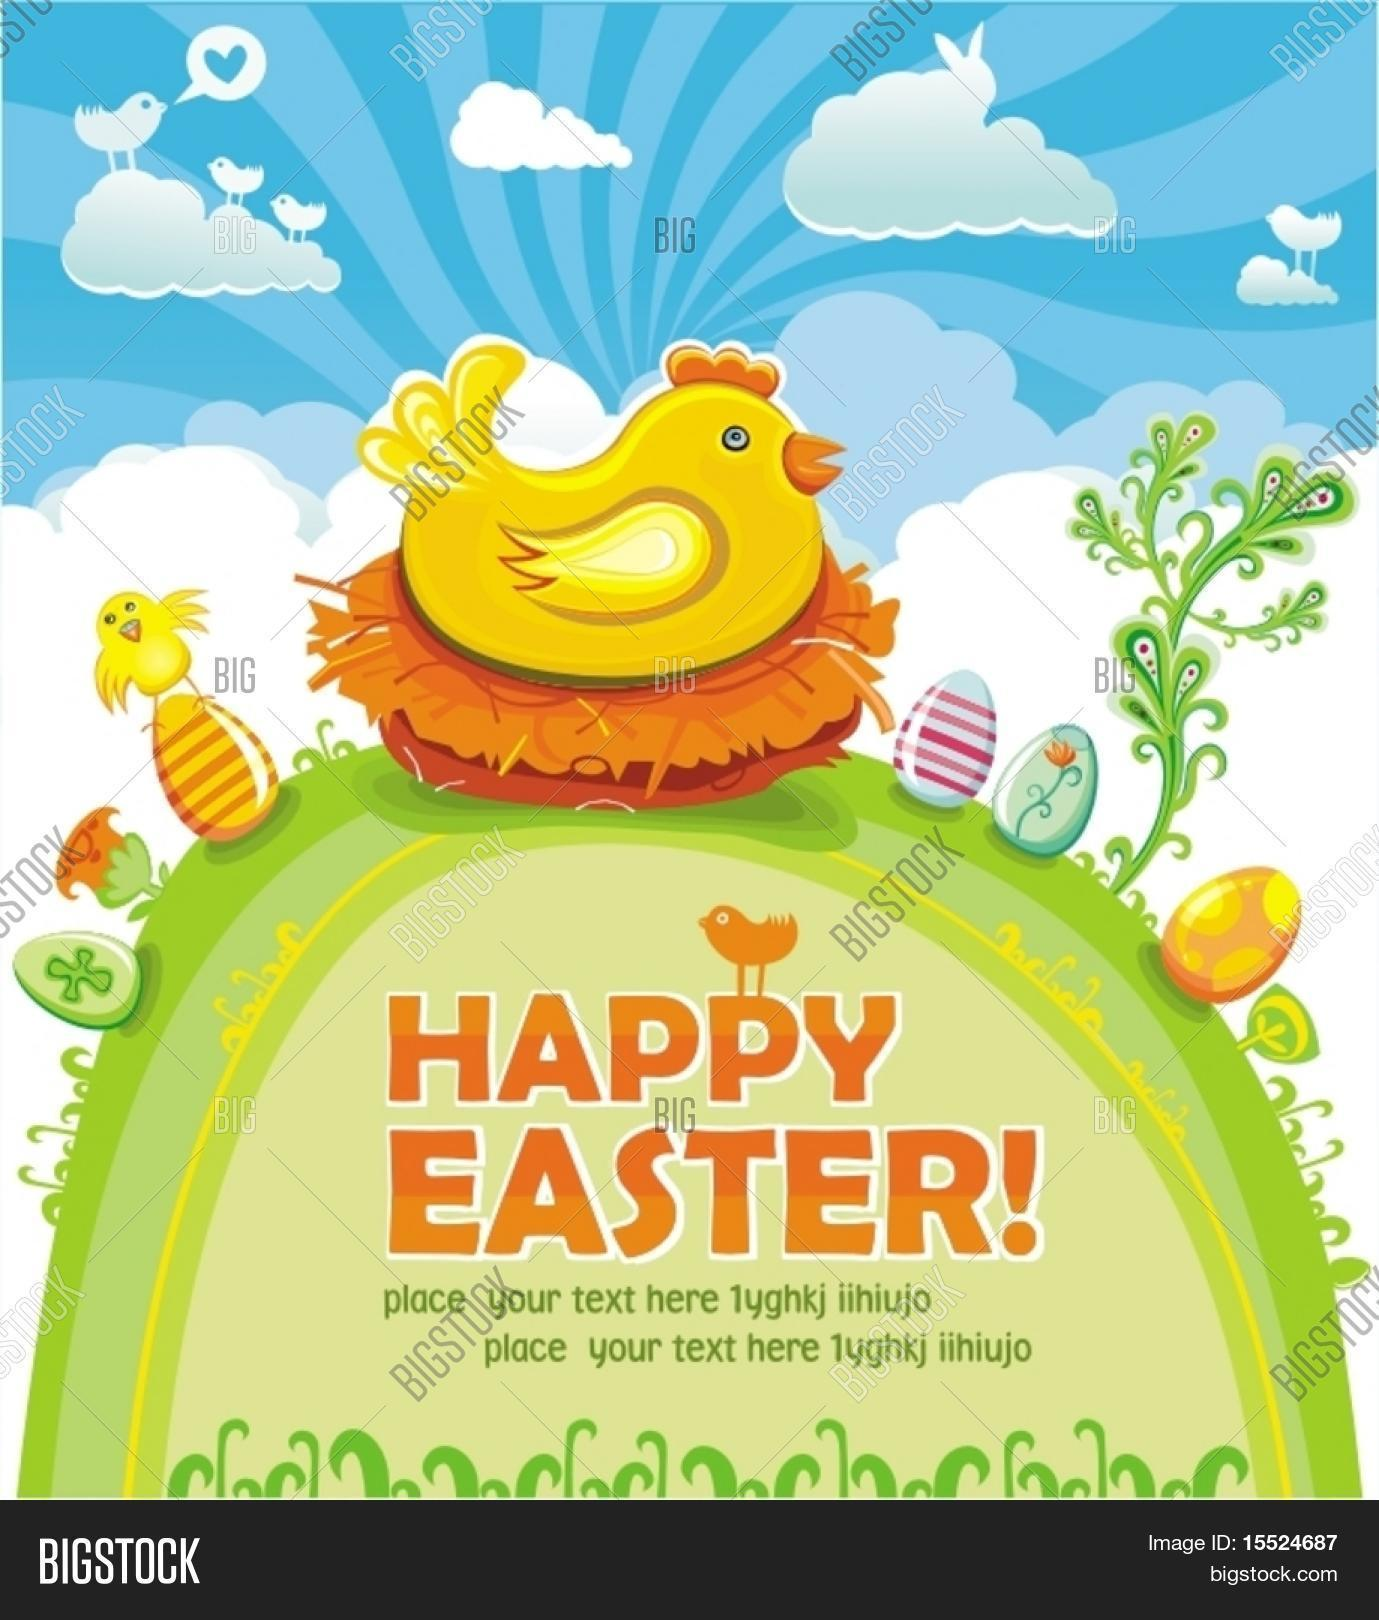 Easter Greeting Card Vector Photo Free Trial Bigstock